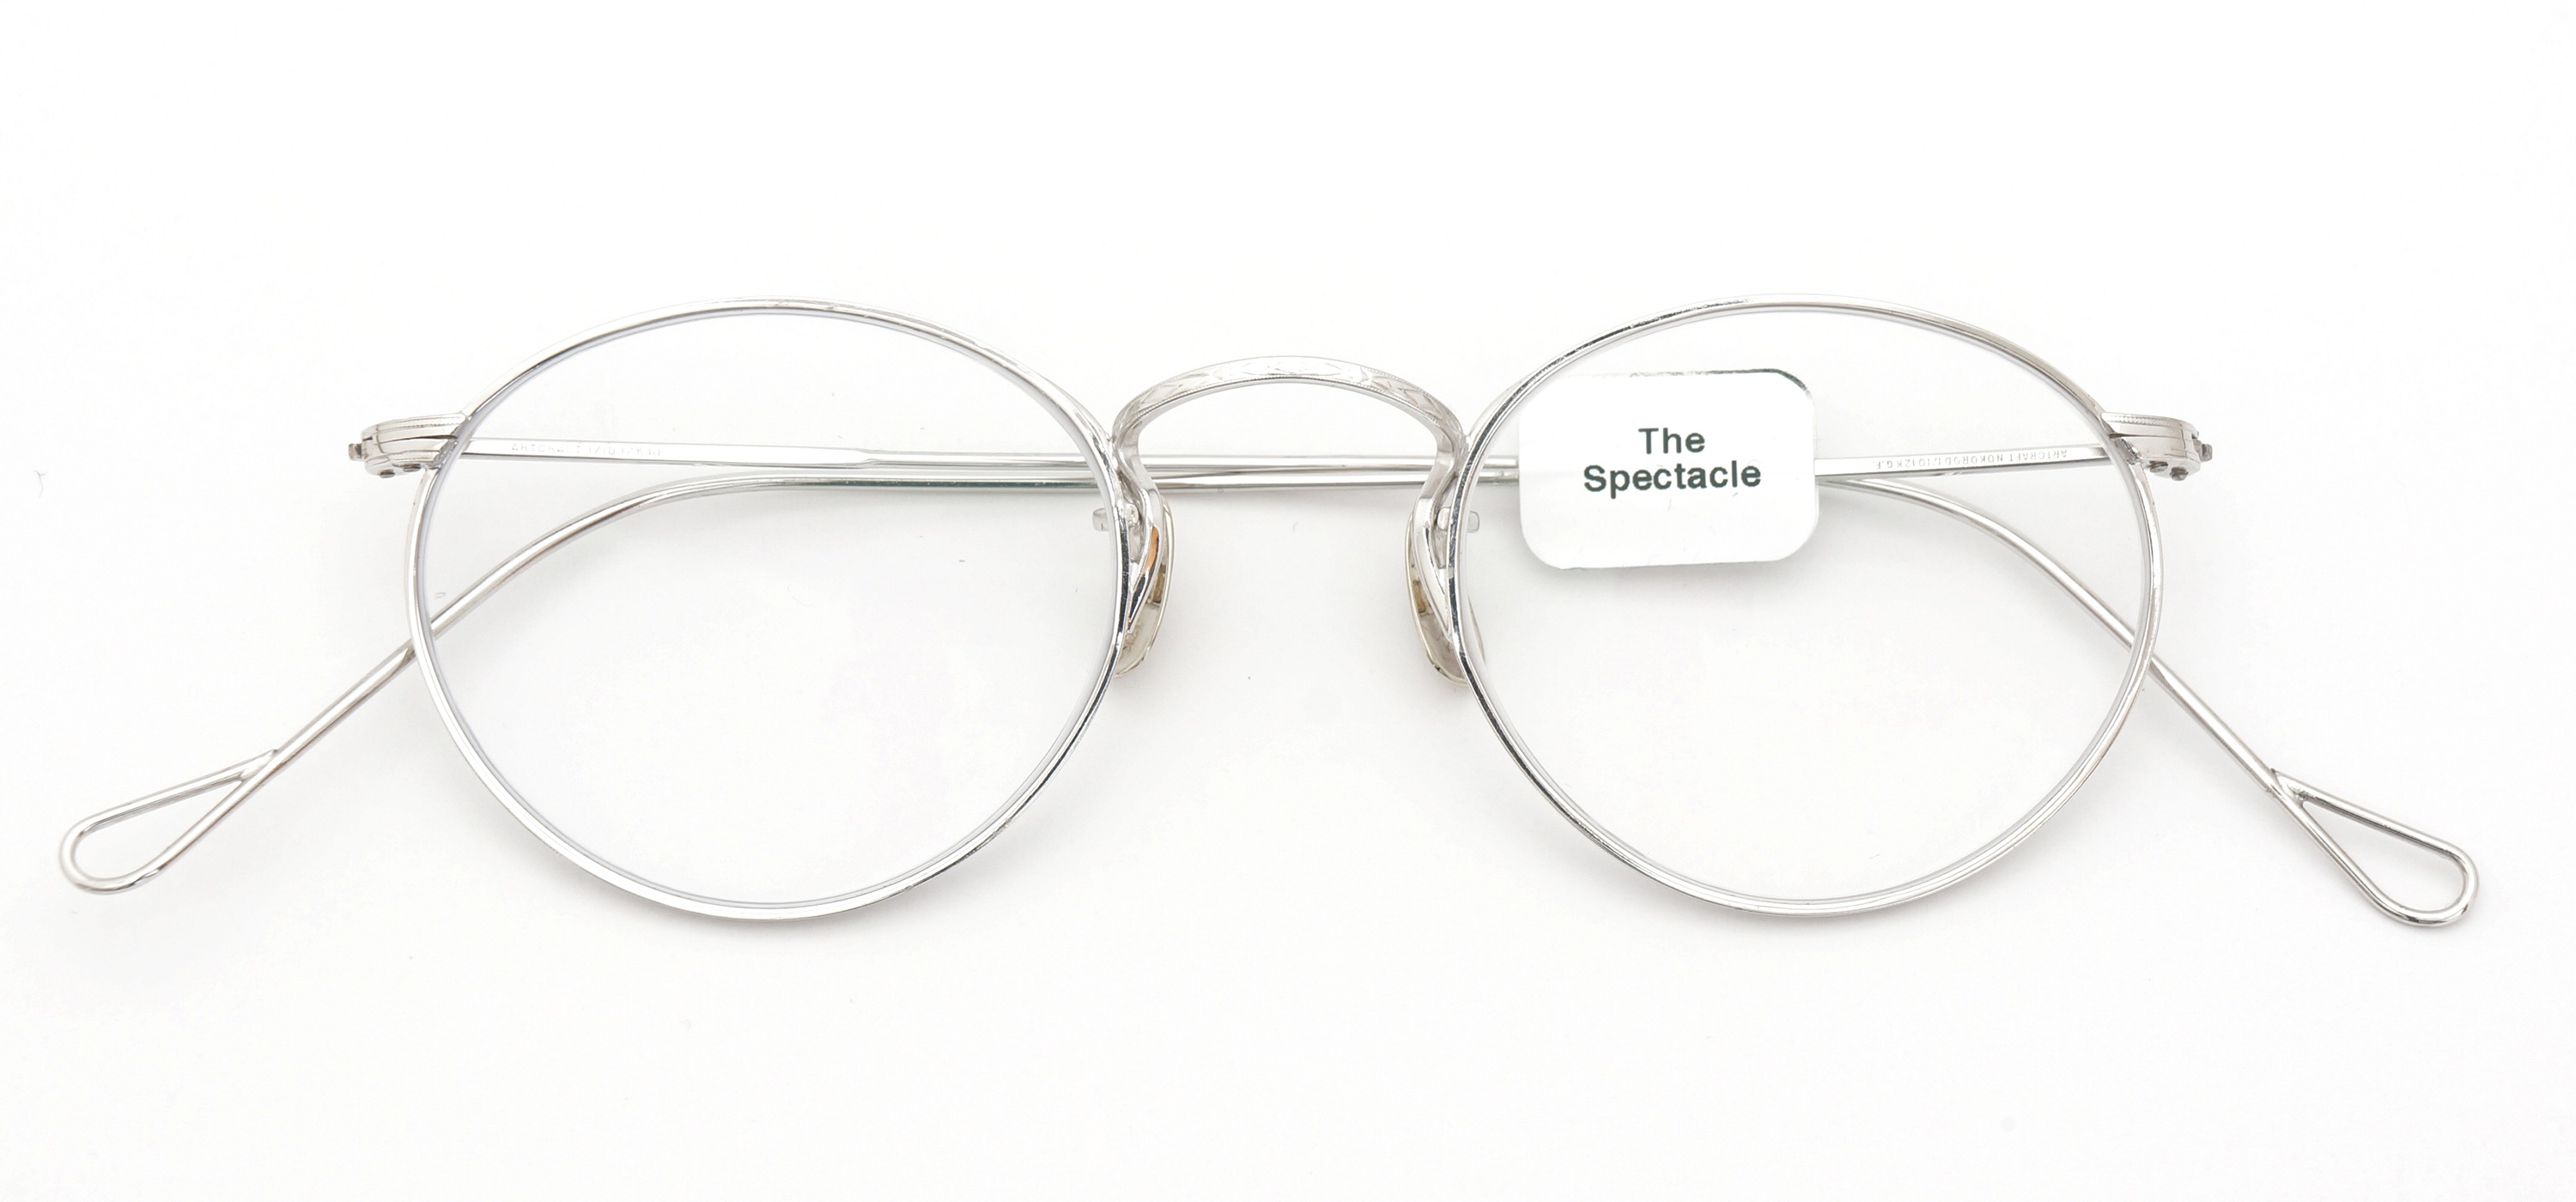 The Spectacle メガネ 1937 Artcraft Optical The-Artbit NOKOROD P-6 WG 12kPads 45-21 イメージ2